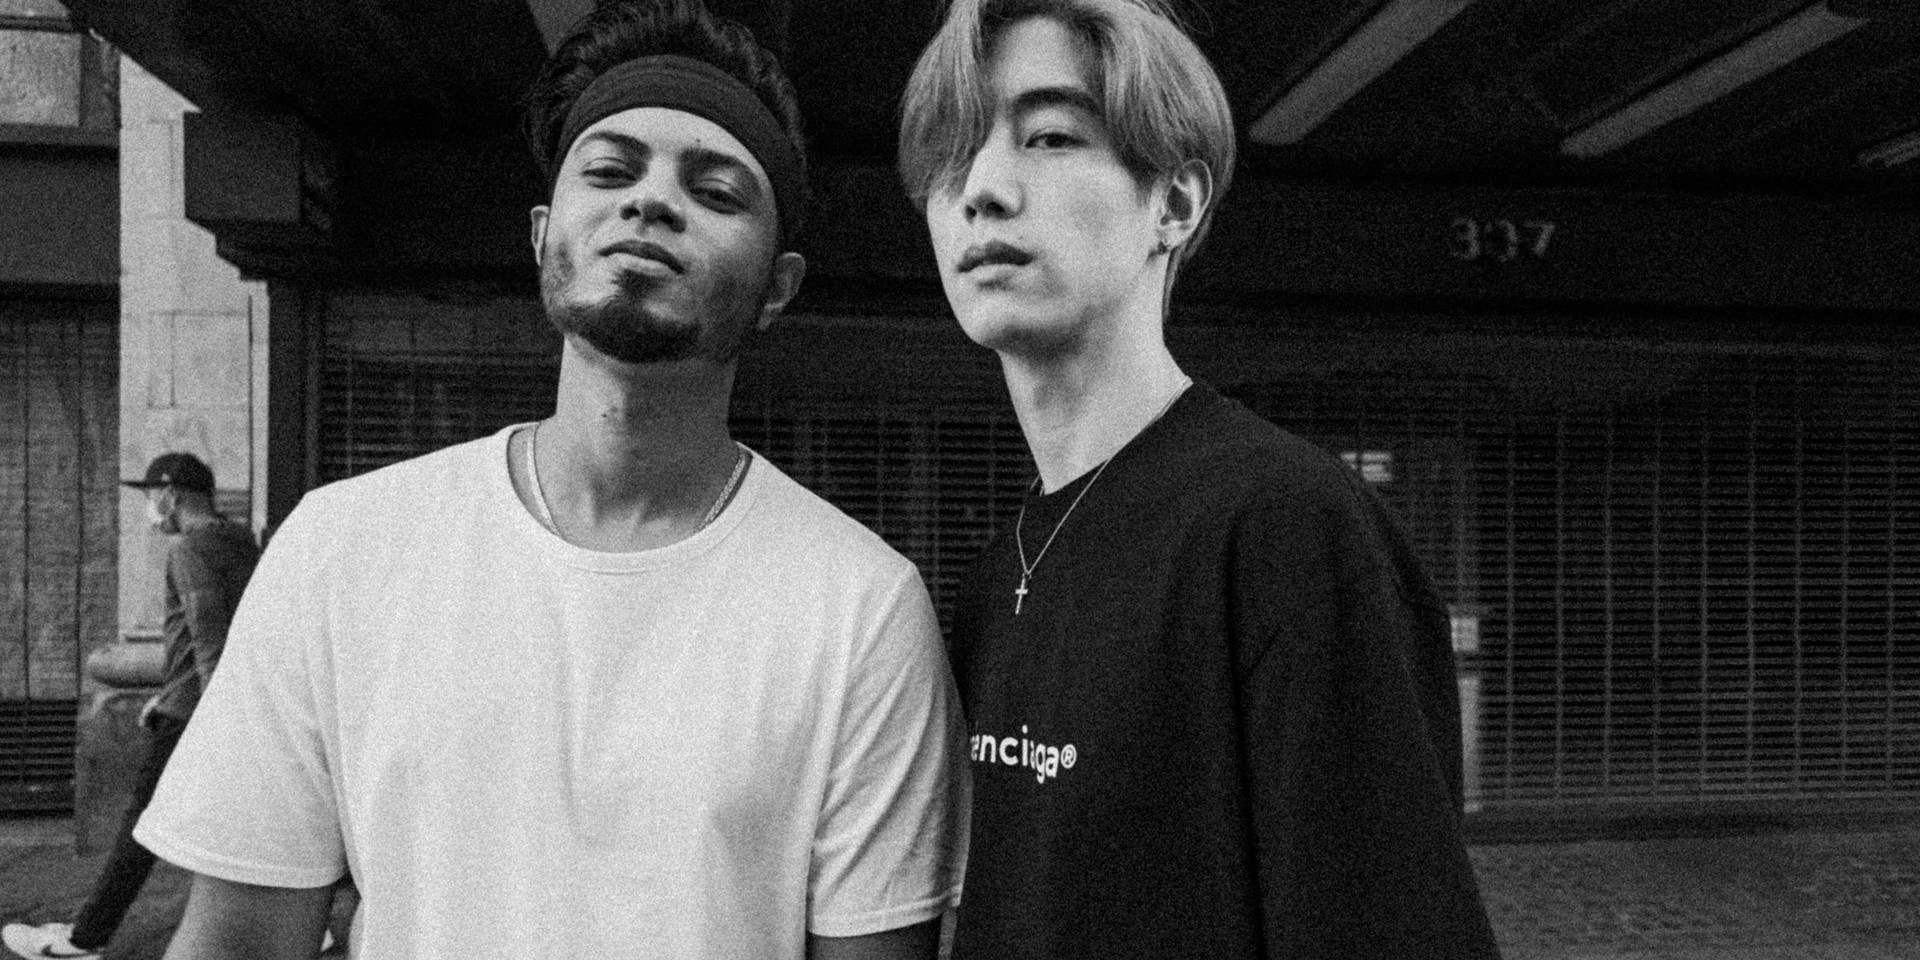 Mark Tuan collaborates with Sanjoy for new single 'One In A Million' - watch